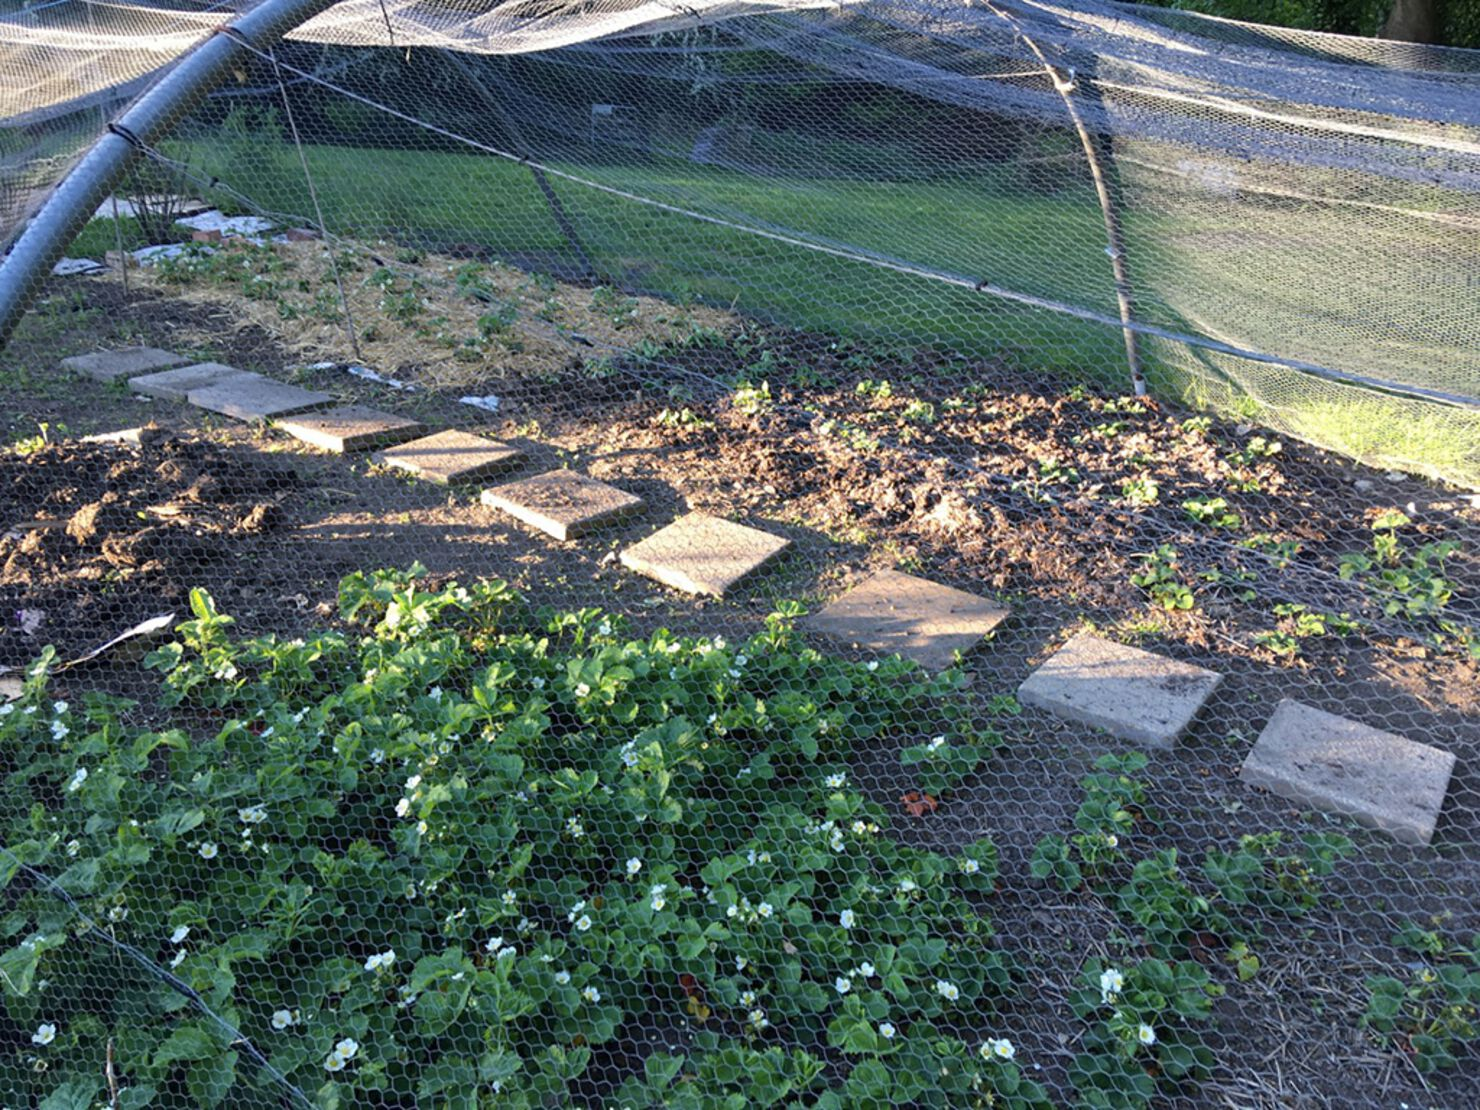 Weeded, tidied, thinned out and replanted strawberry plants.